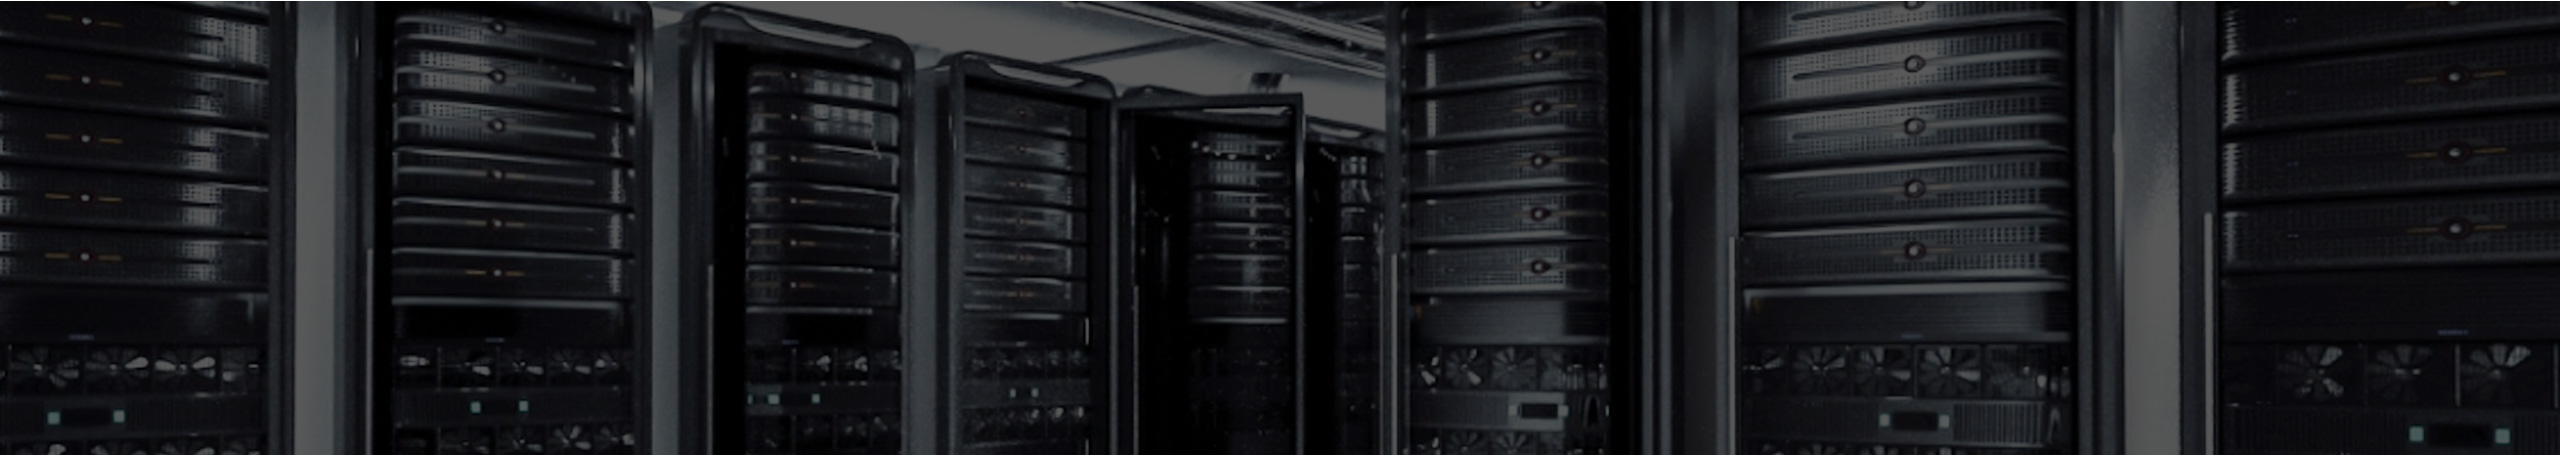 cloud data center | hybrid cloud computing